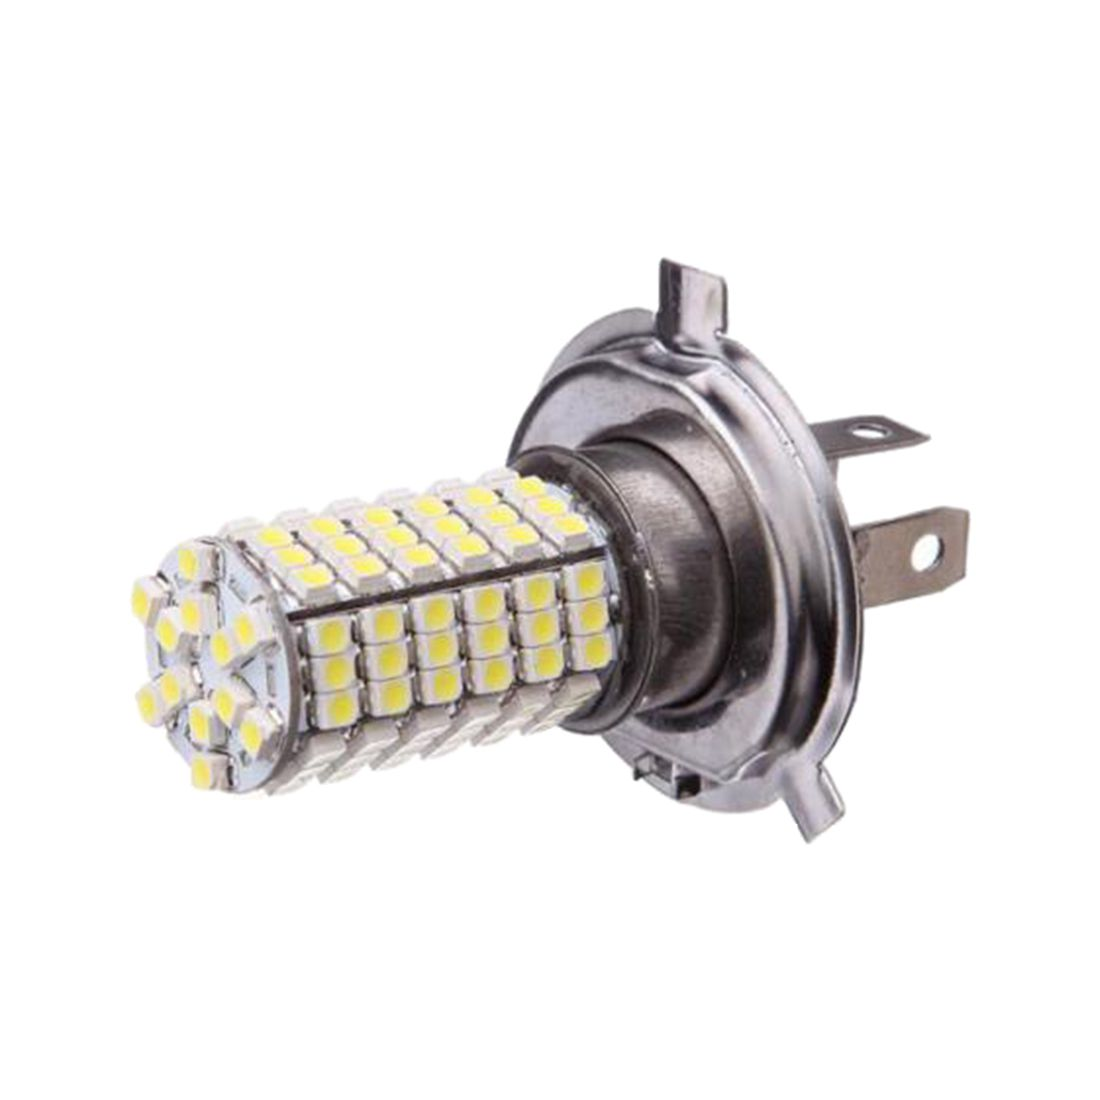 Car H4 120 LED 3528 SMD White Fog Headlight Bulb Head Light 12V Super Bright NEW l20121211 1 h7 12w 600lm 6500k 4 smd 7060 led white light car dipped headlight dc 12v